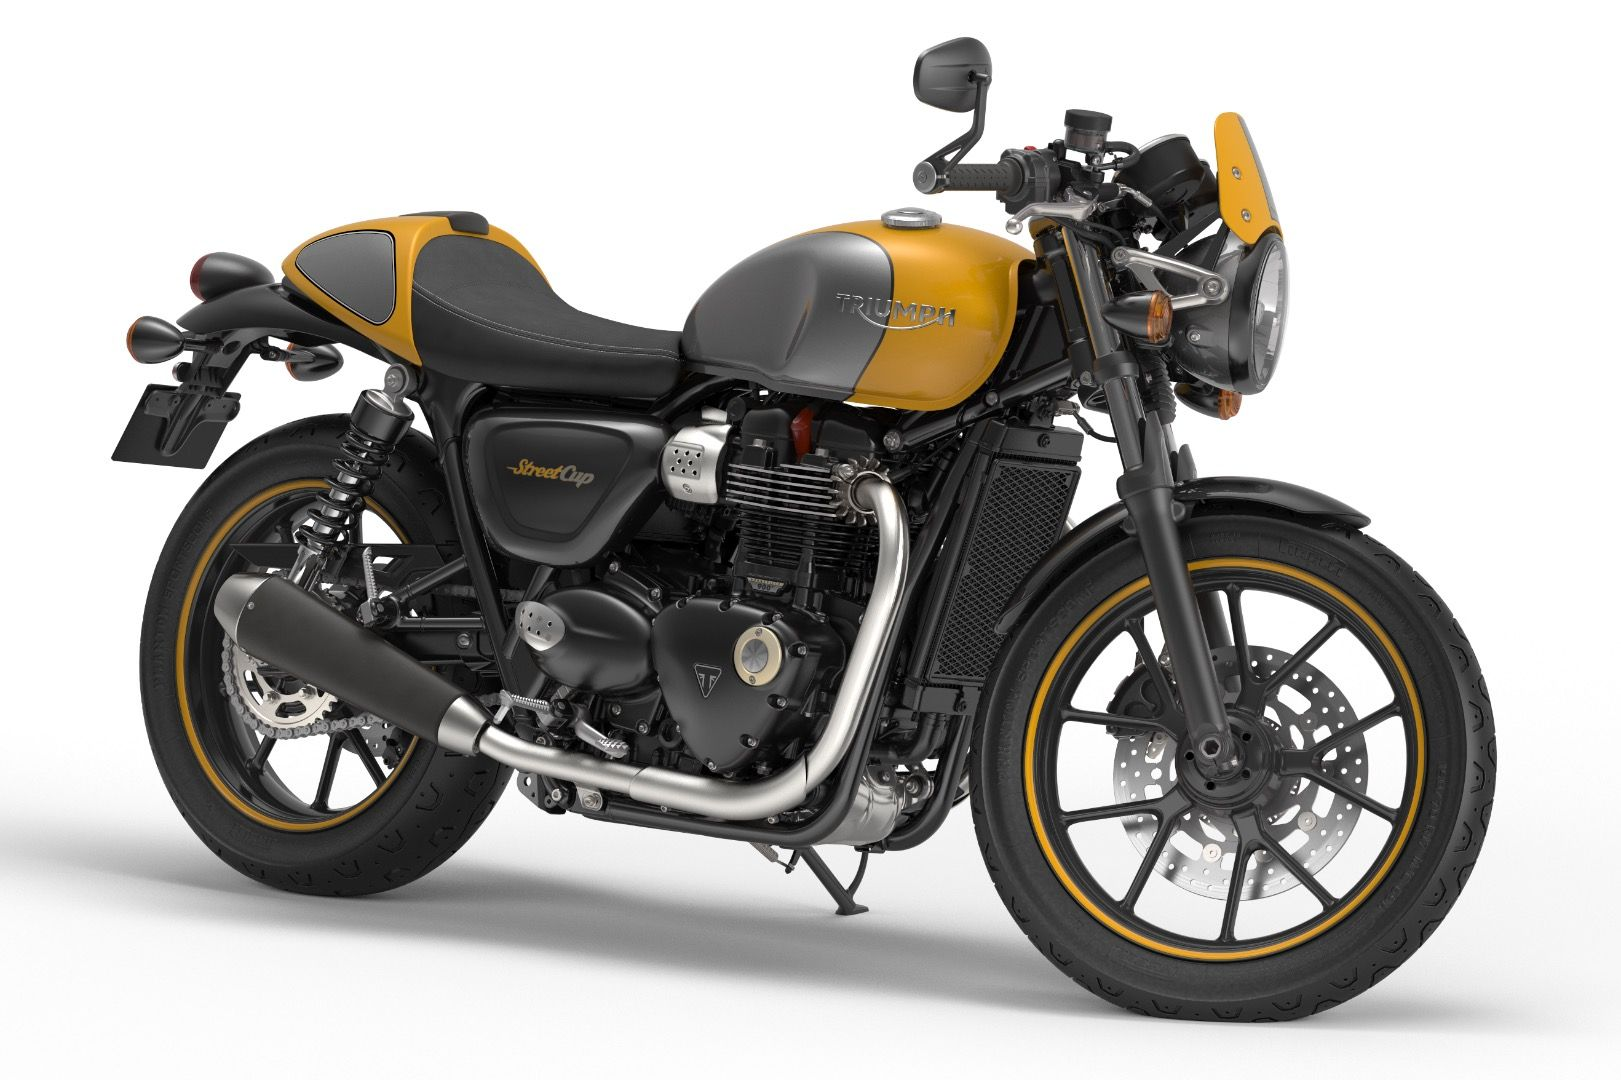 2017 triumph street cup first look - for sale | 2016 triumphs